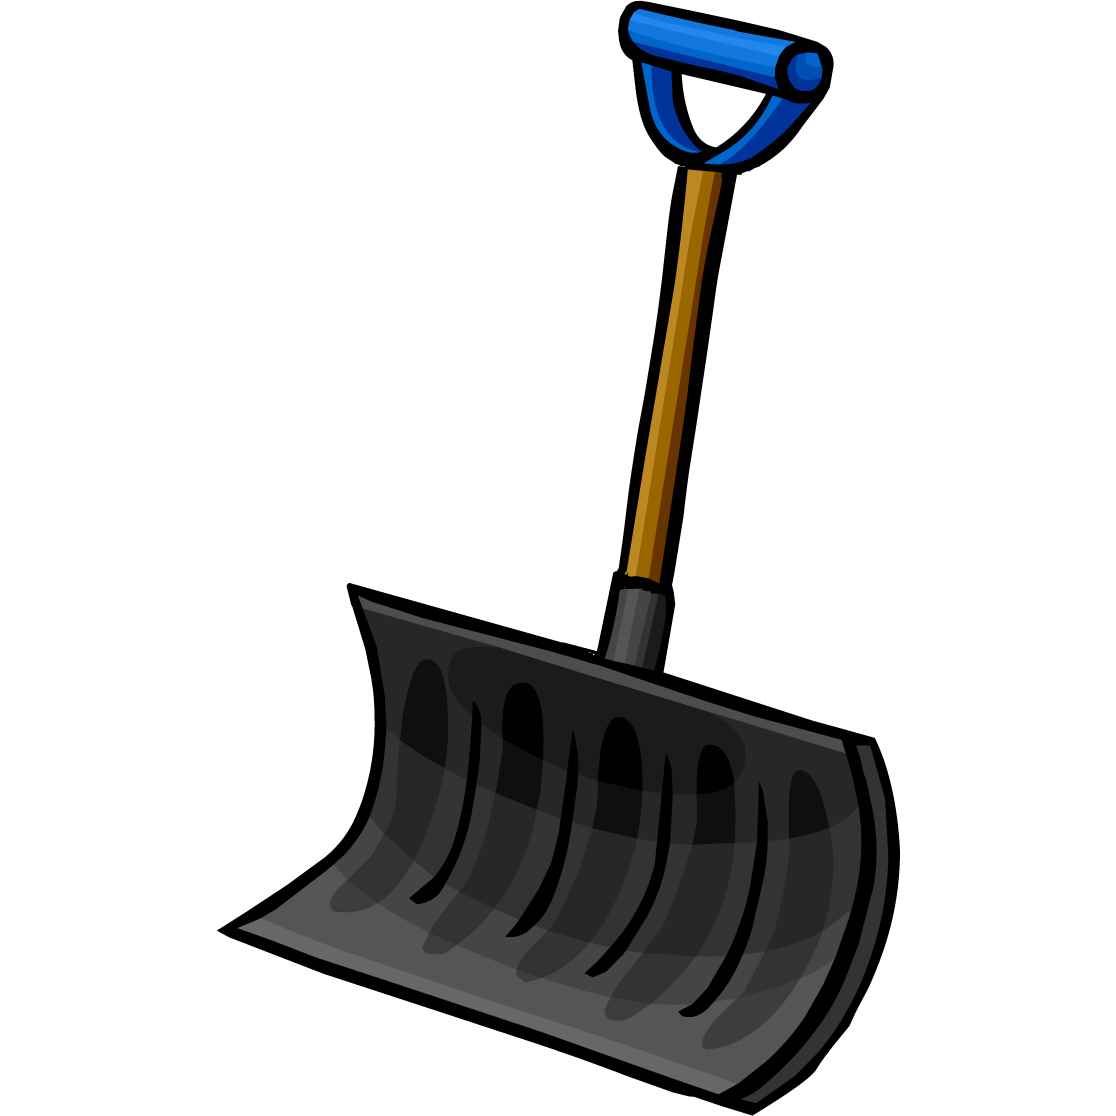 1116x1116 Snow Shovel Club Penguin Wiki The Free Editable Encyclopedia Clip